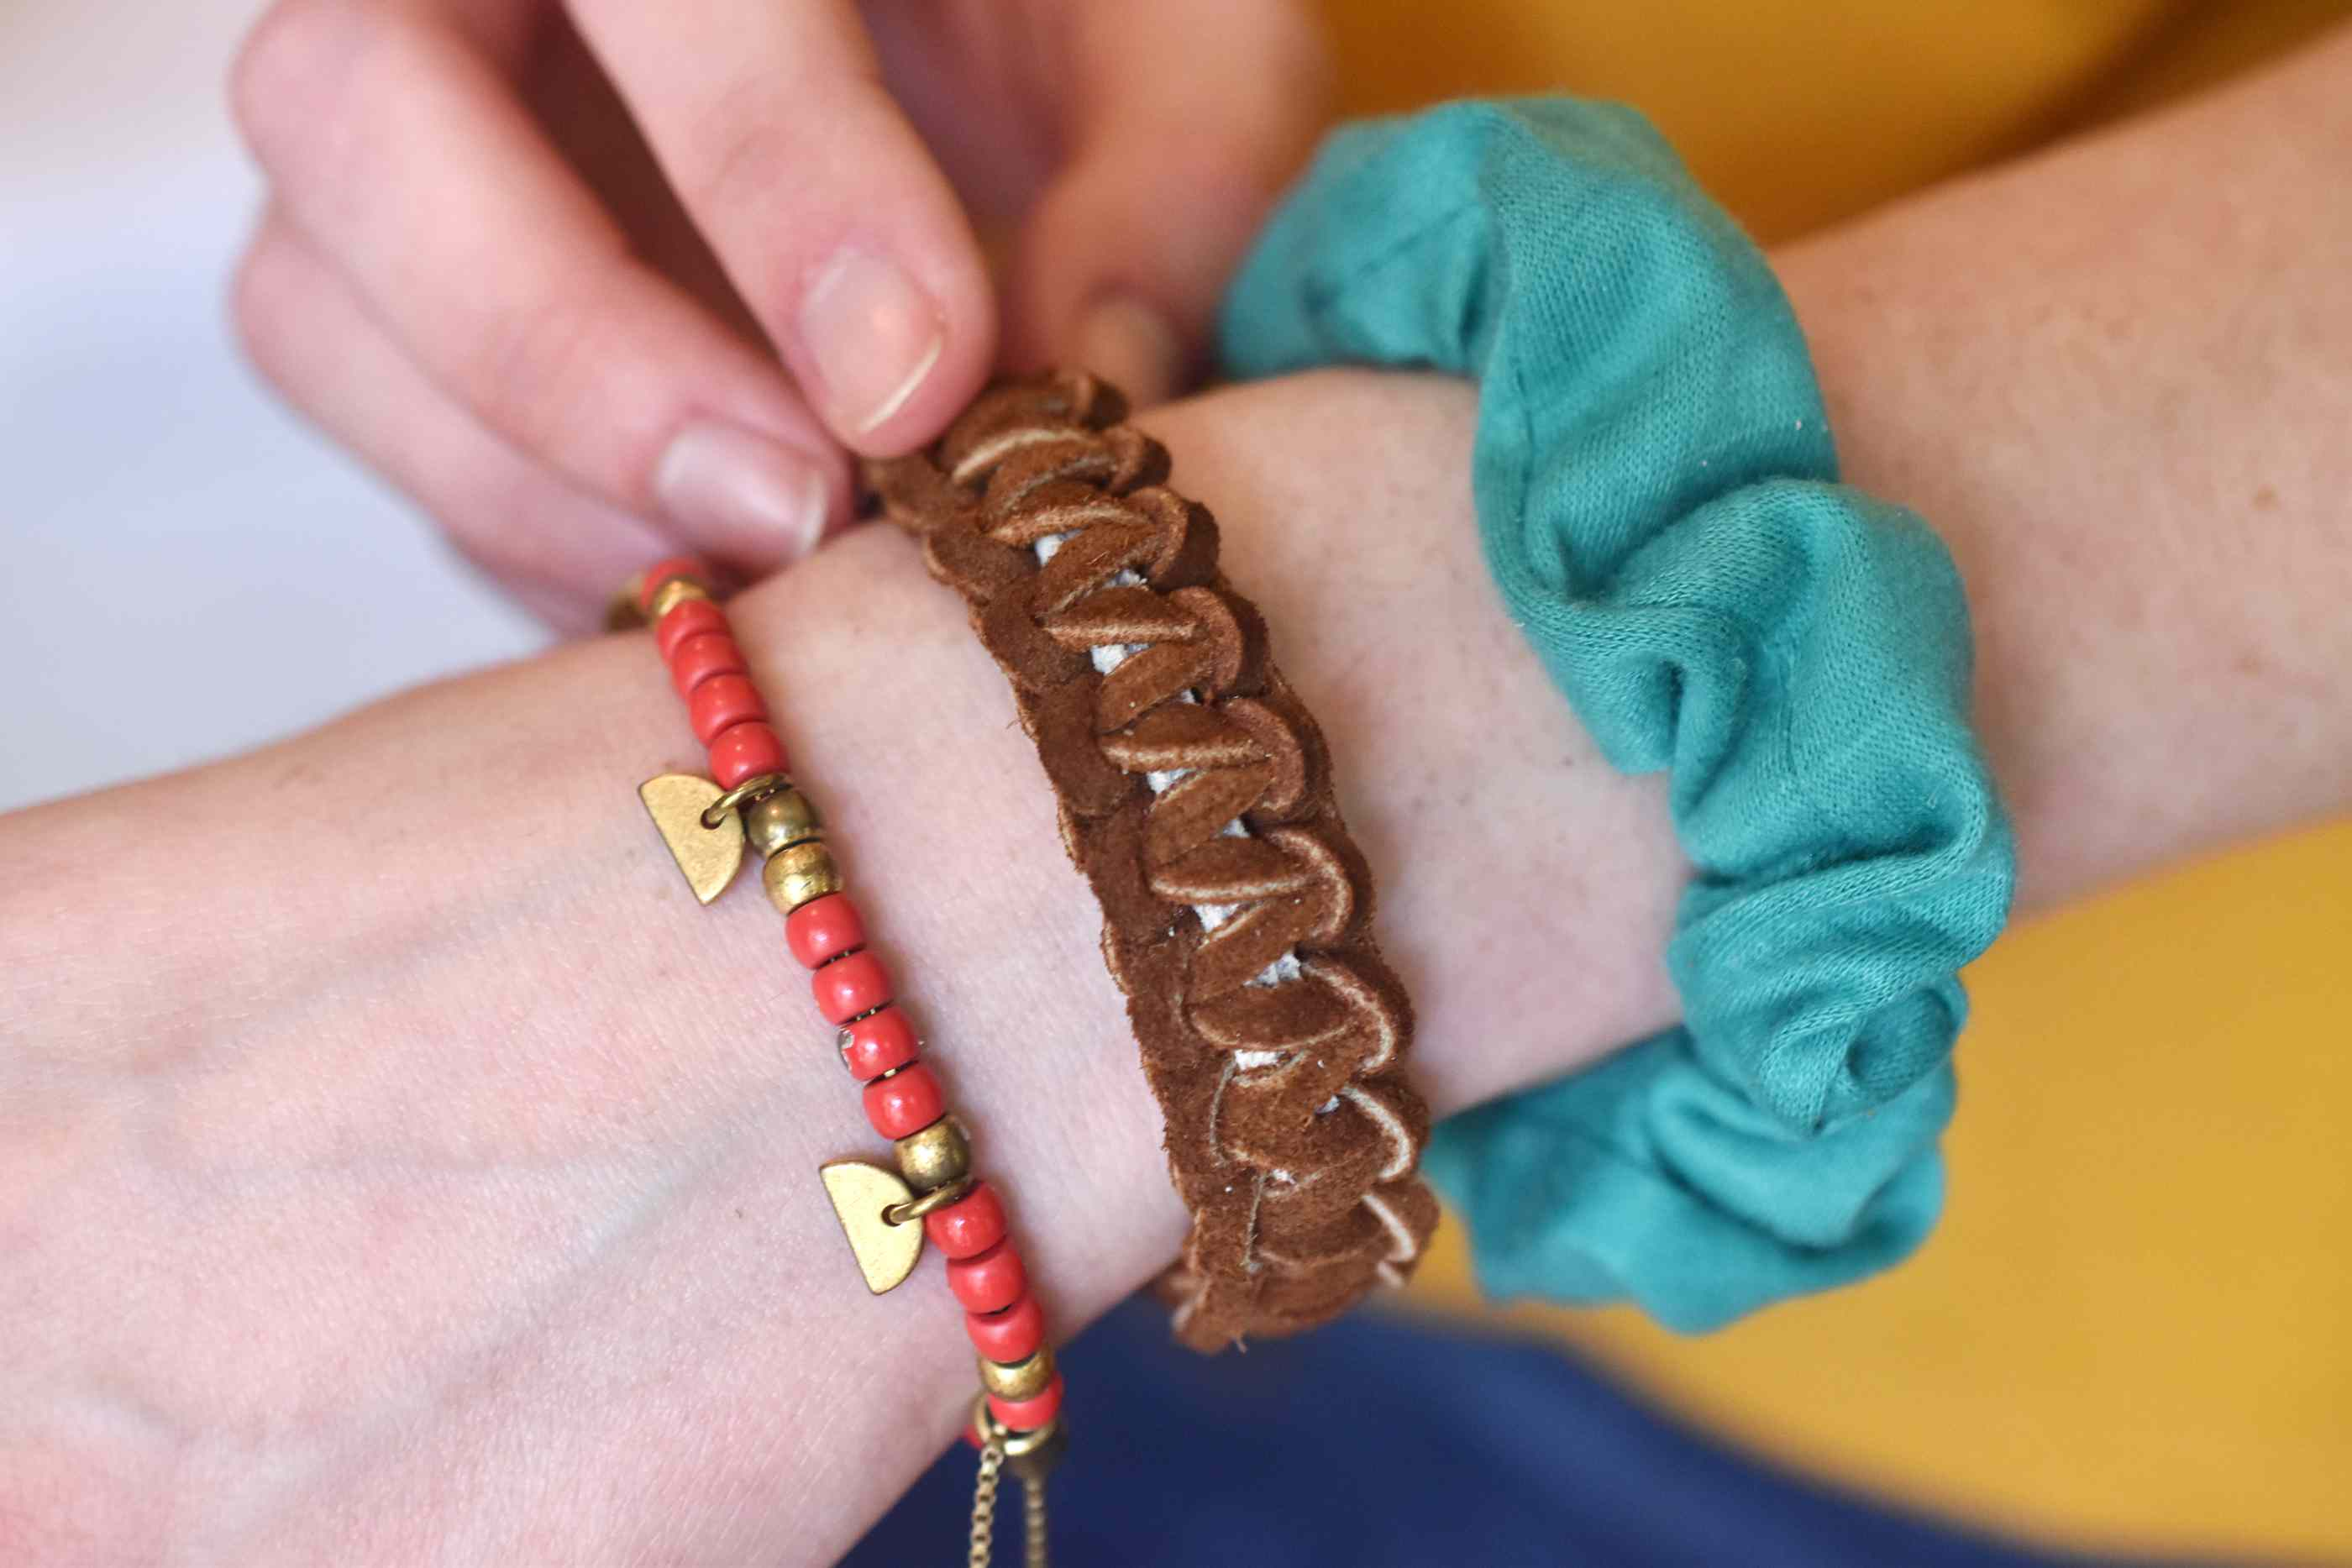 Young Woman Wearing a Cobra Knot Bracelet with Scrunchies and Other Jewelry